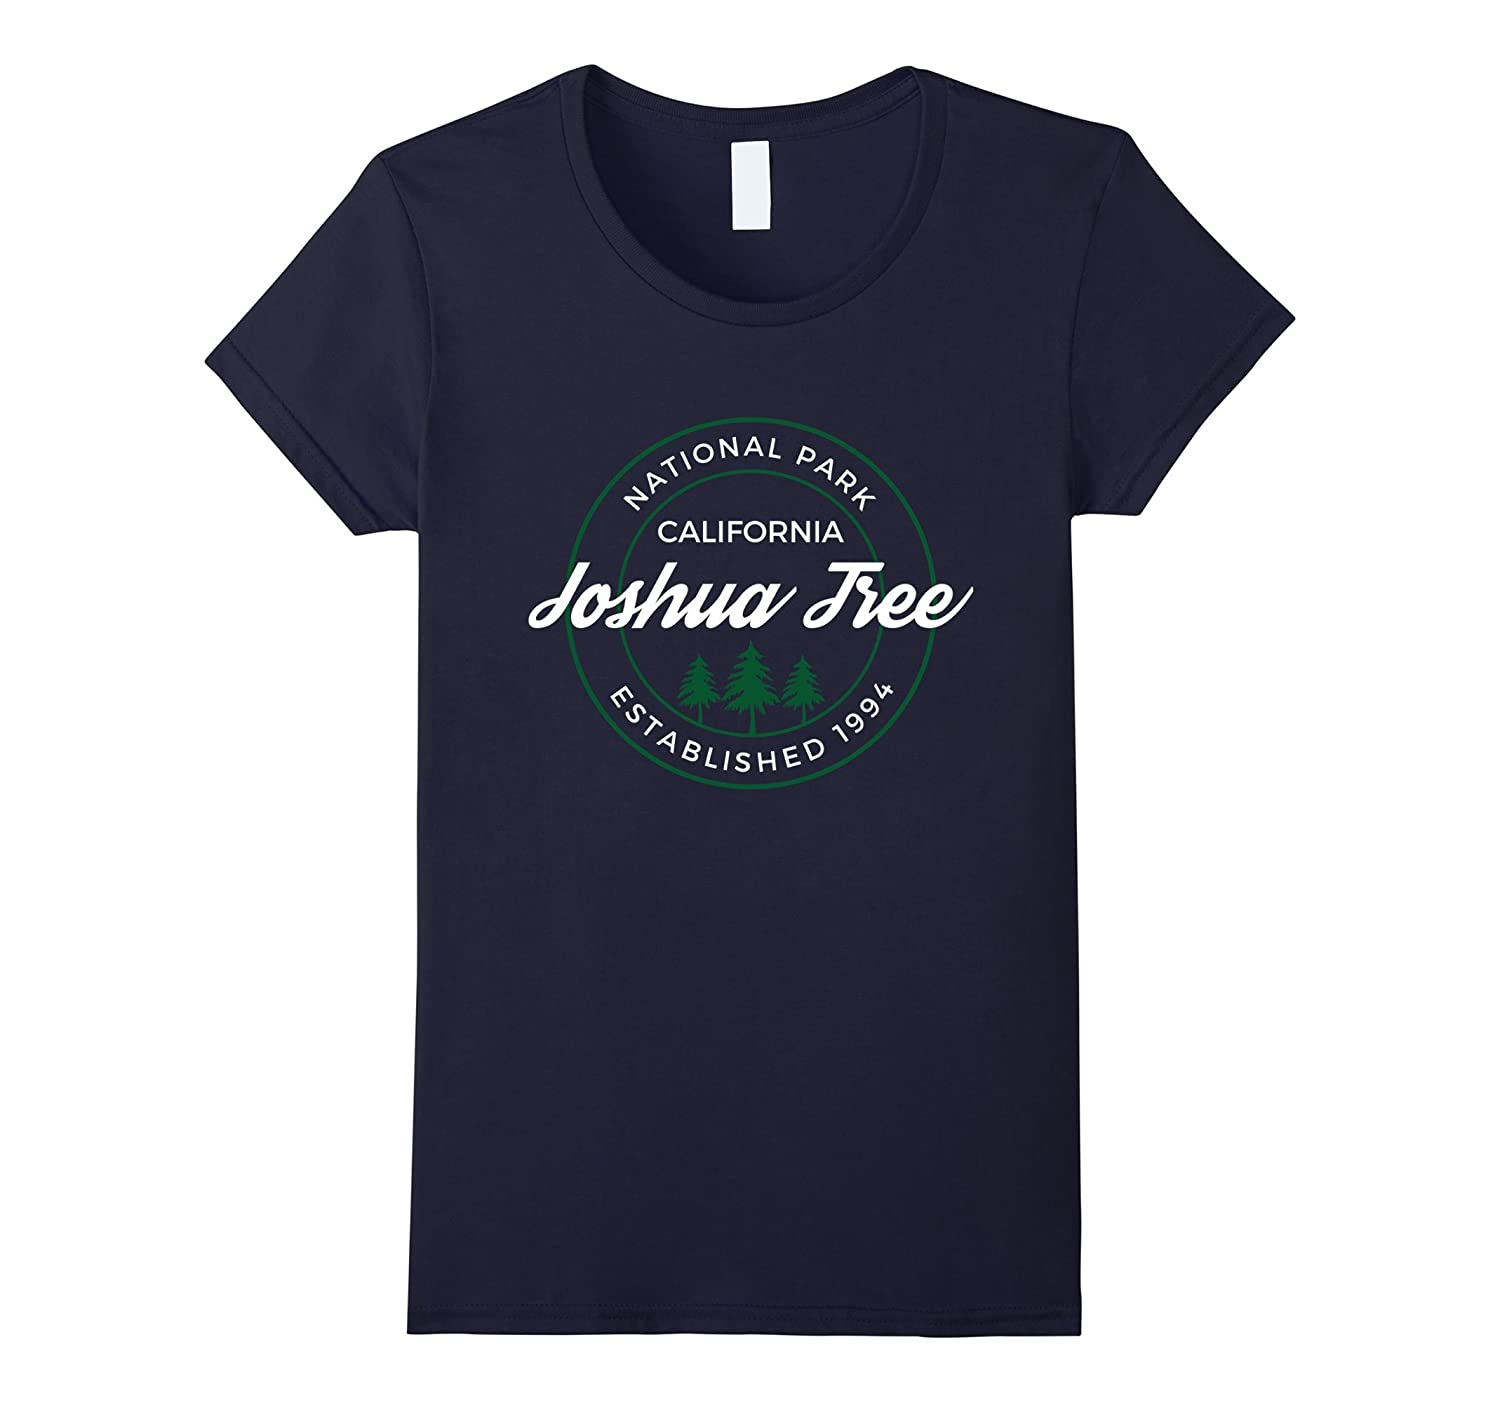 Joshua Tree National Park California T Shirt Souvenirs